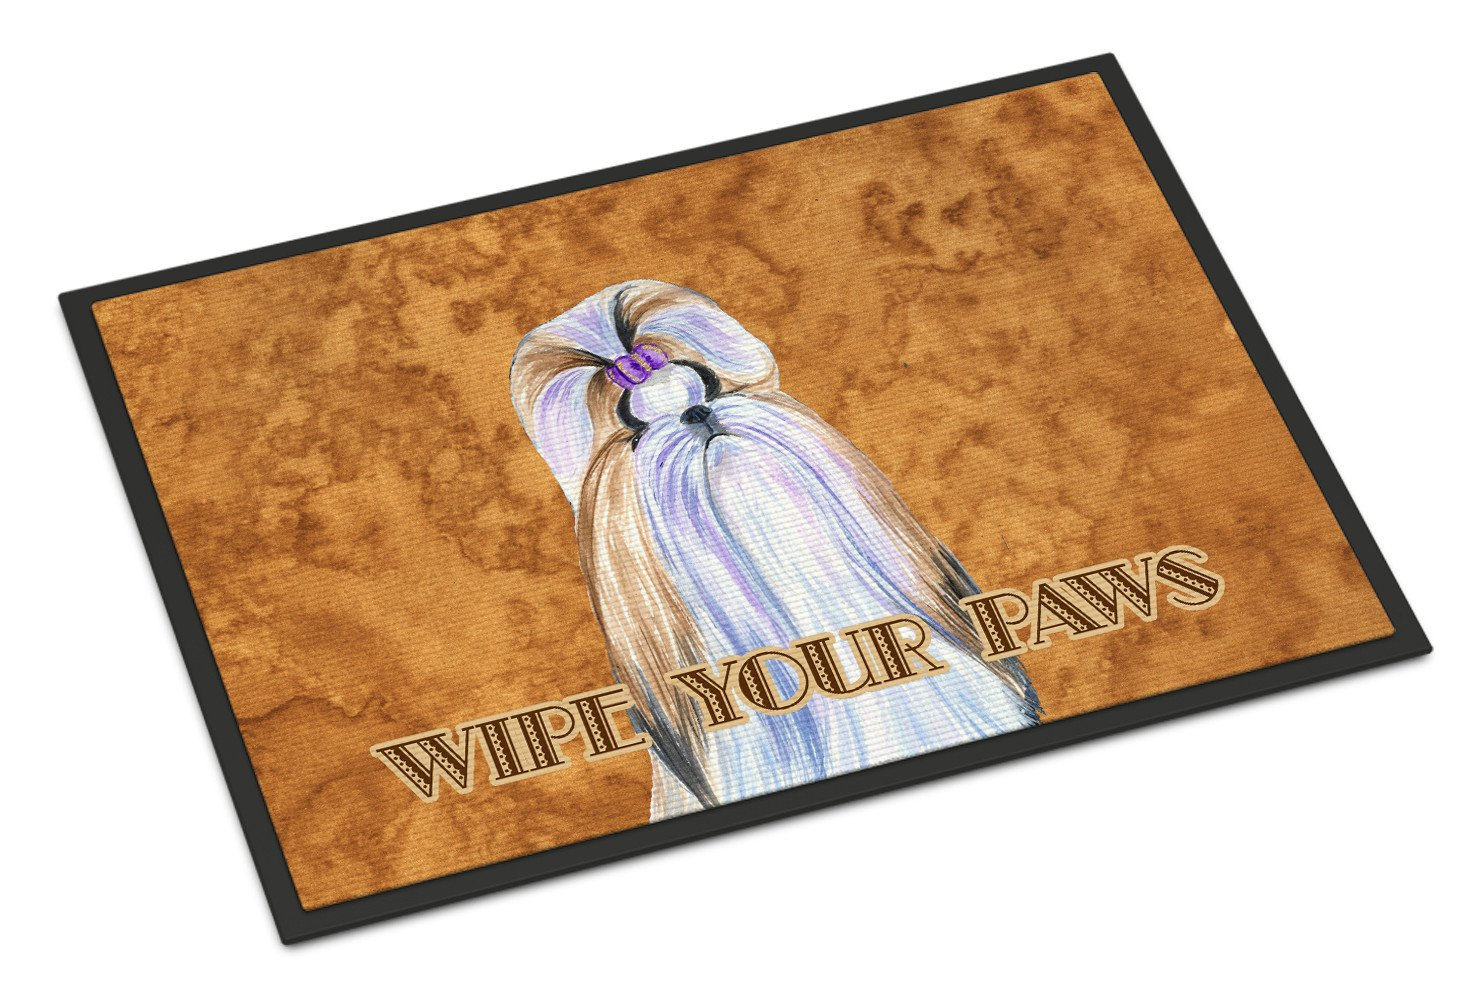 Shih Tzu Wipe your Paws Indoor or Outdoor Mat 18x27 SS4904MAT - the-store.com